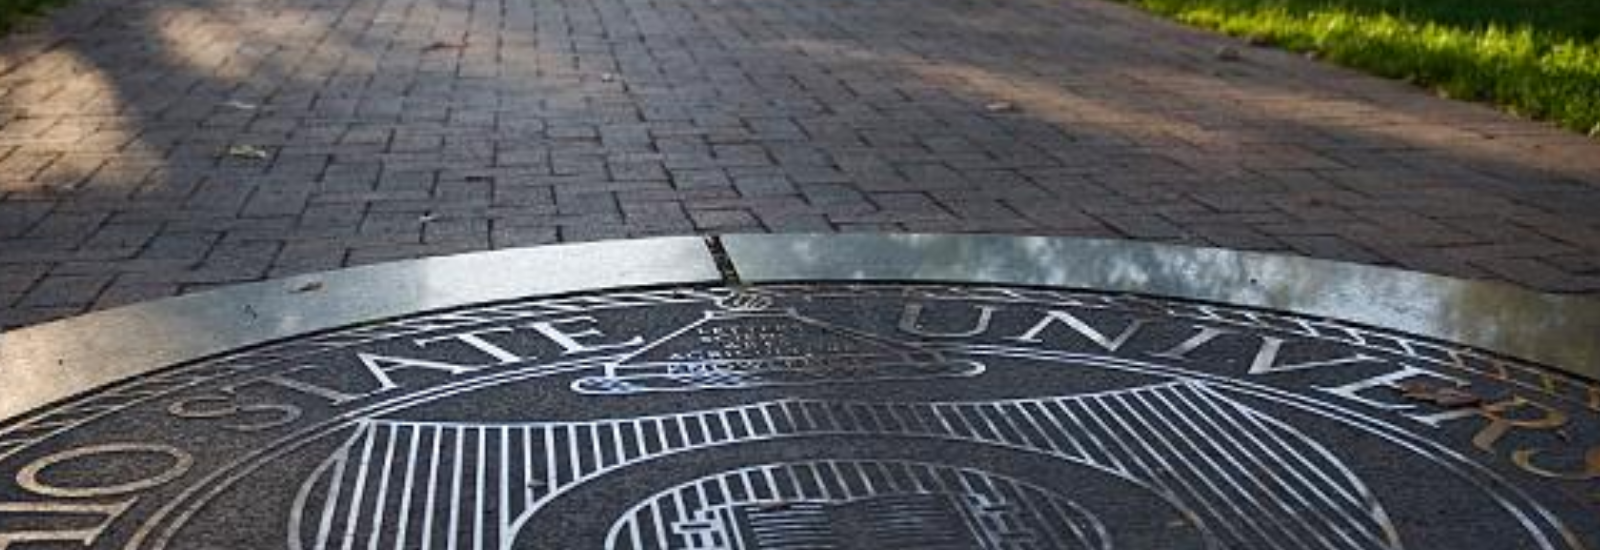 Ohio State seal outdoors on campus during summer.